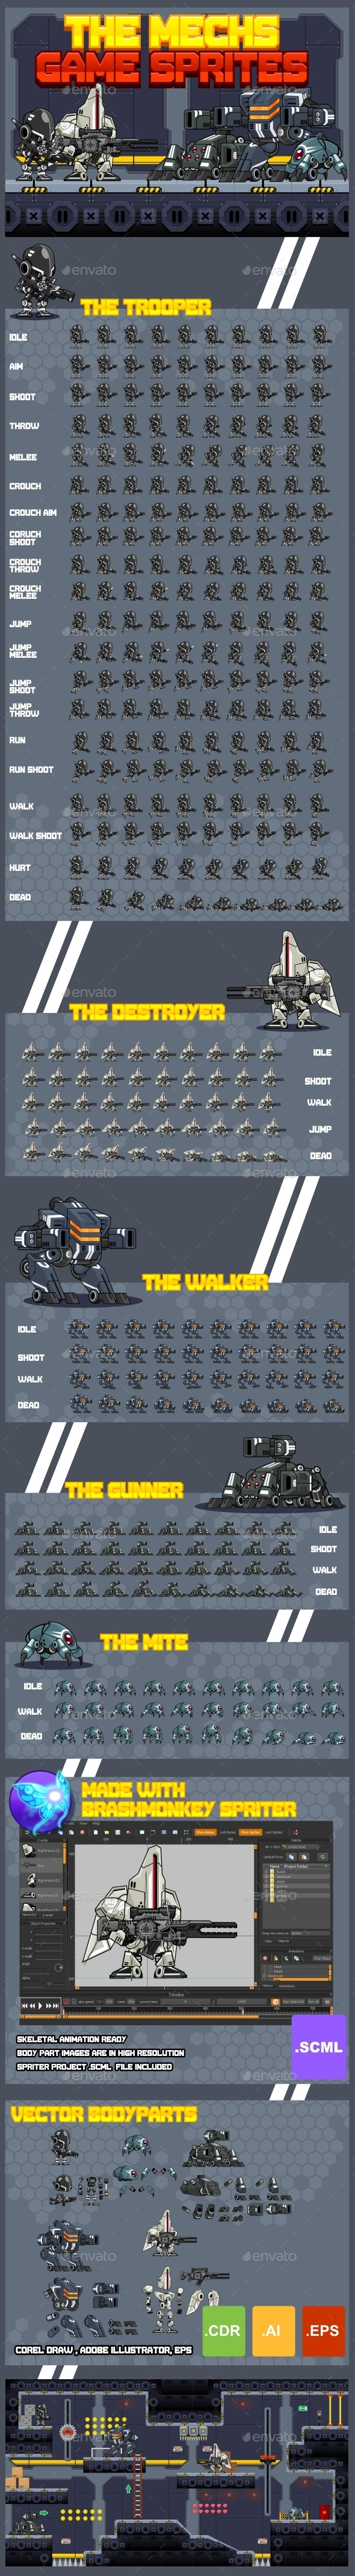 GraphicRiver The Mechs Game Sprites 10508066